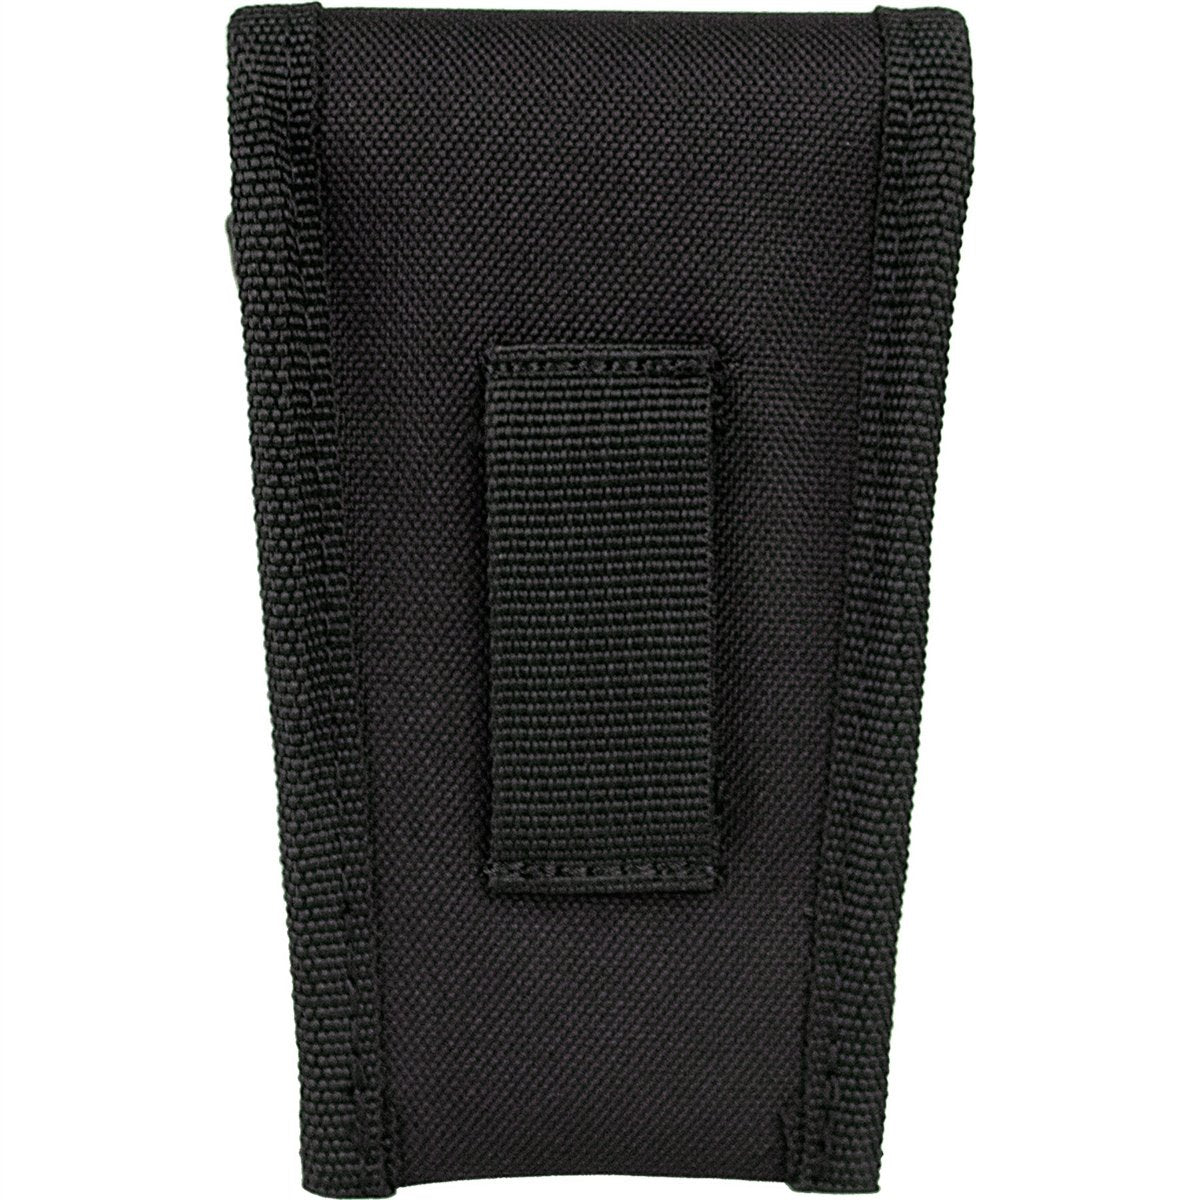 Protec - Single Nylon Mouthpiece Pouch (for Tuba)-Accessories-Protec-Music Elements